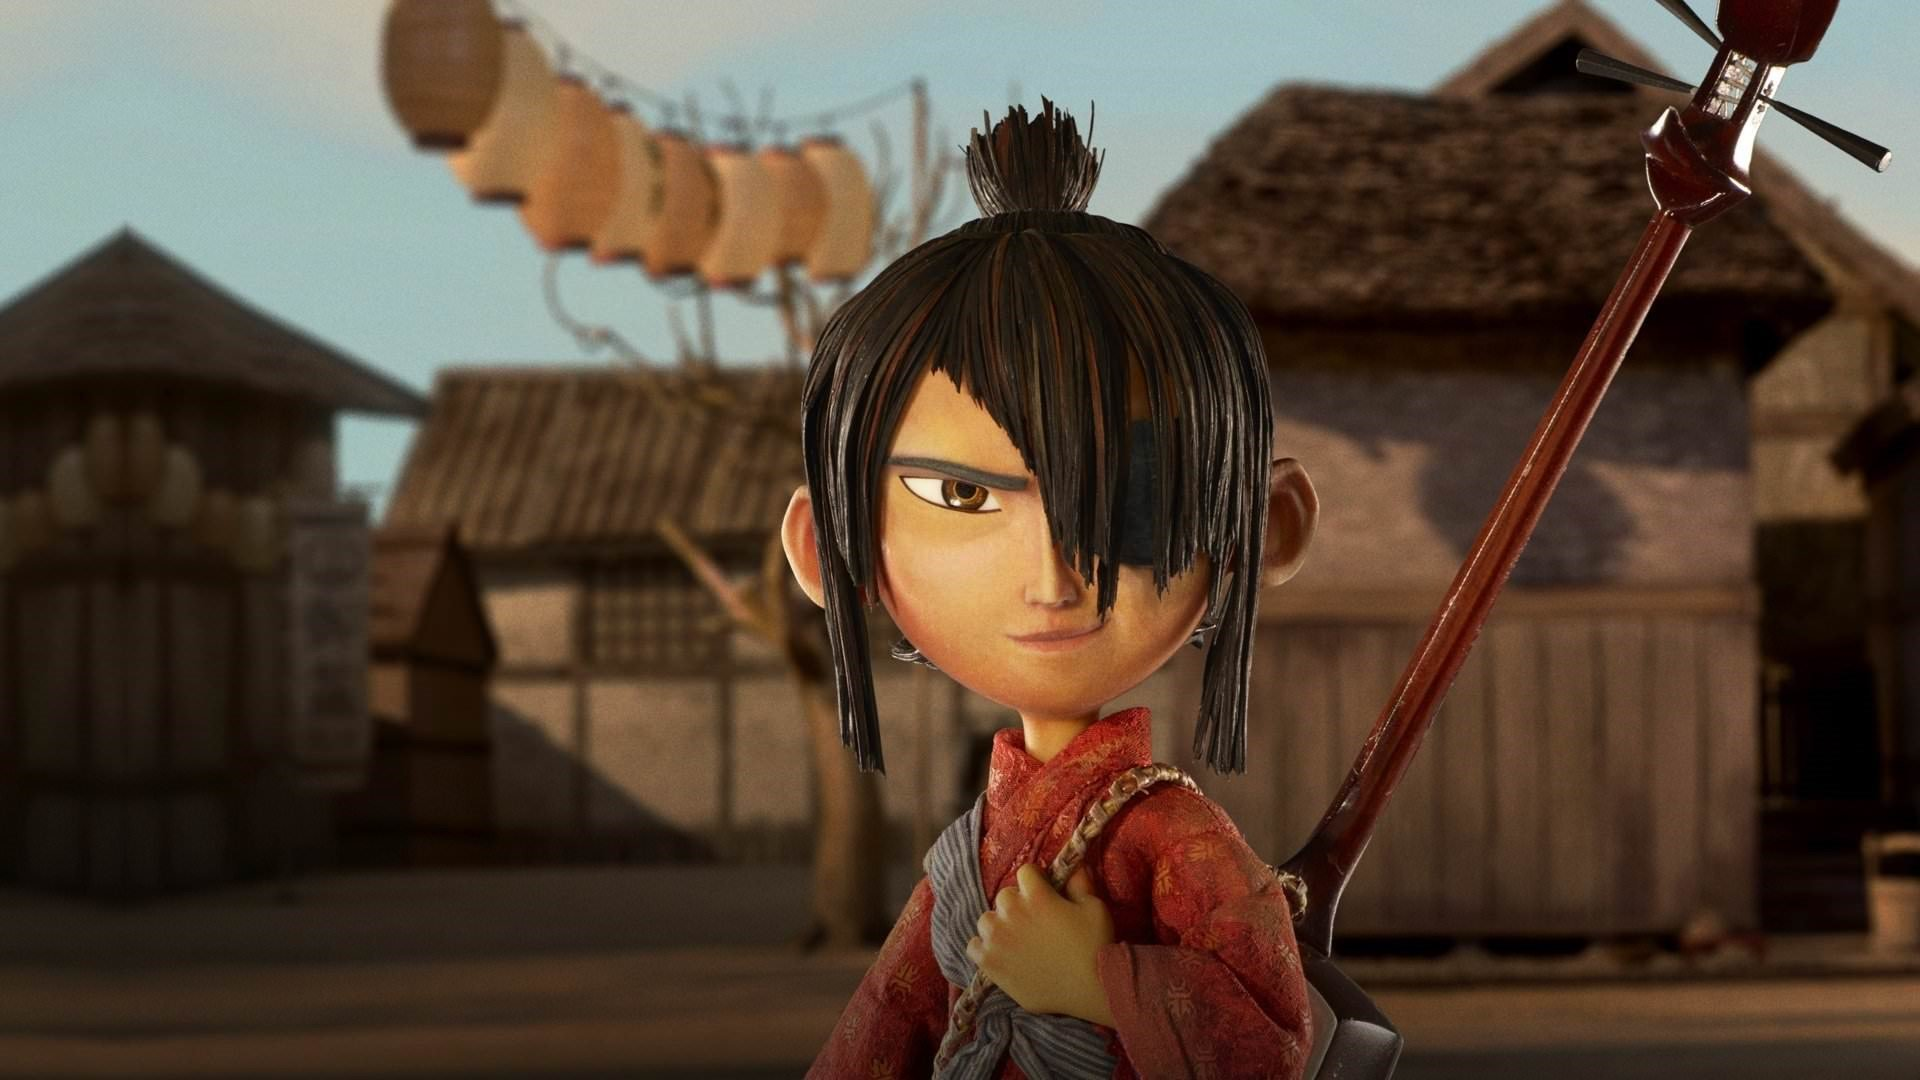 Episode 12 - Kubo and the Two Strings (2016)